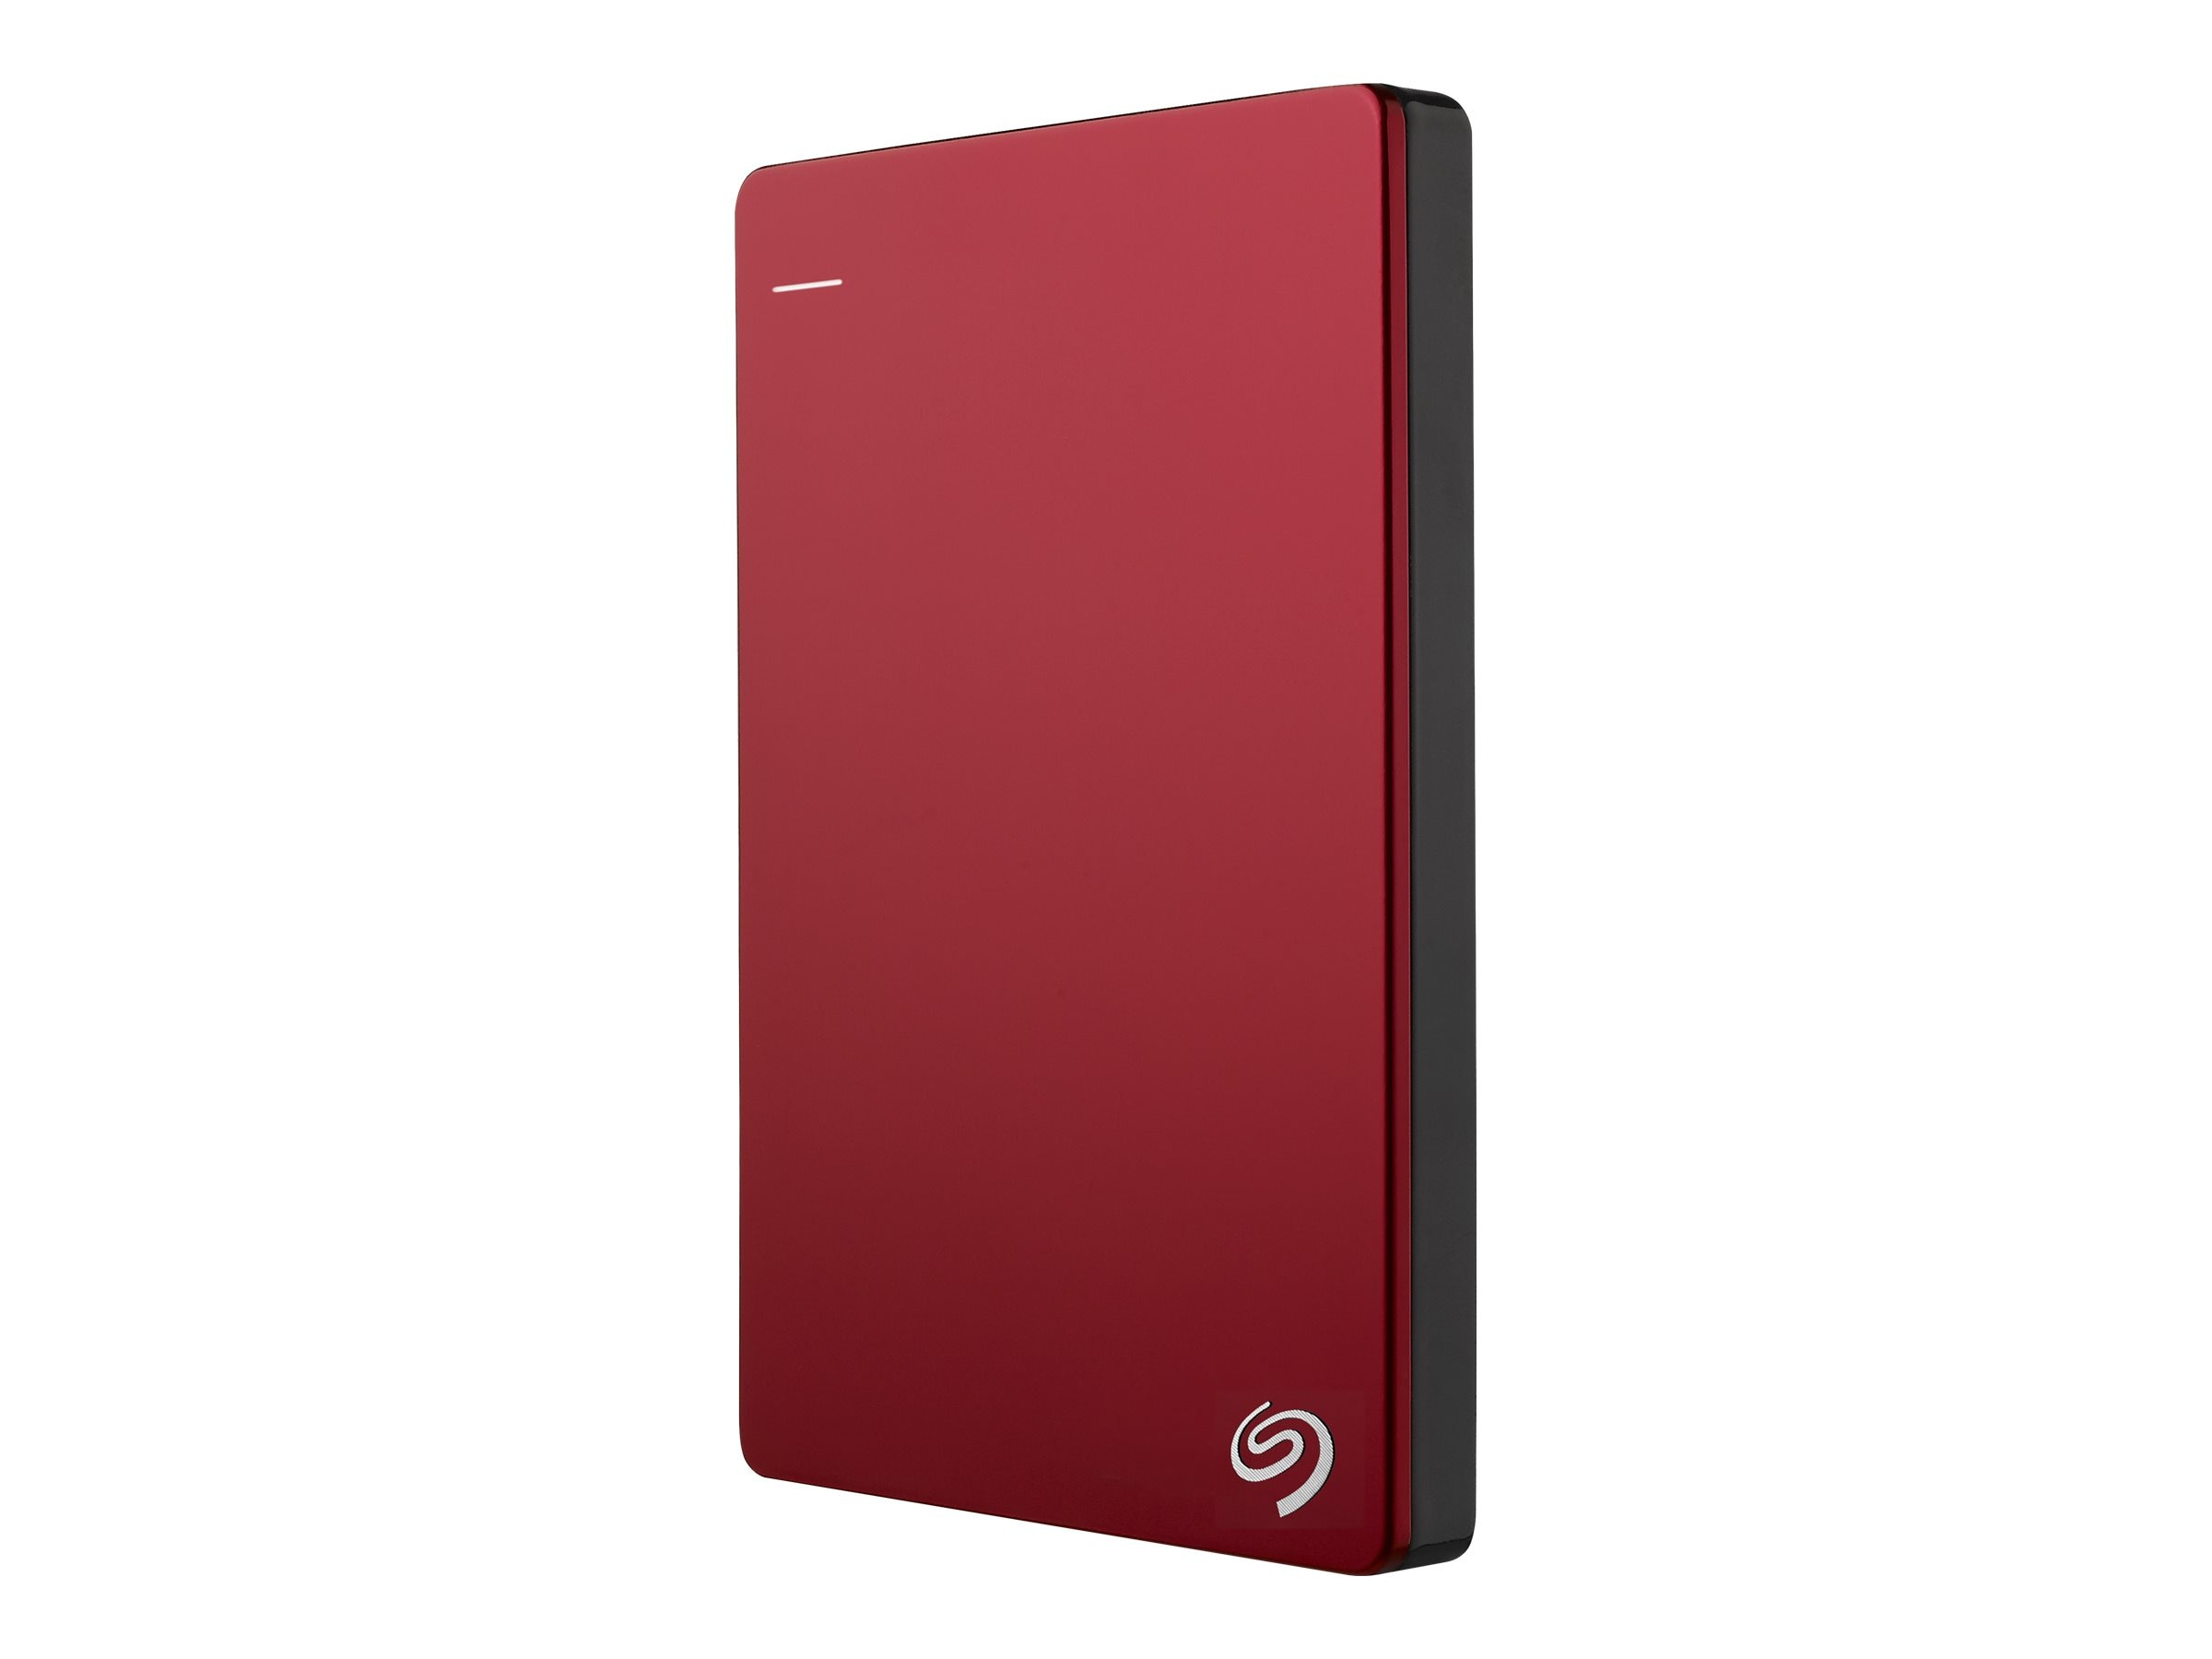 Seagate 1TB Backup Plus USB 3.0 Slim Portable Hard Drive - Red, STDR1000103, 16573946, Hard Drives - External